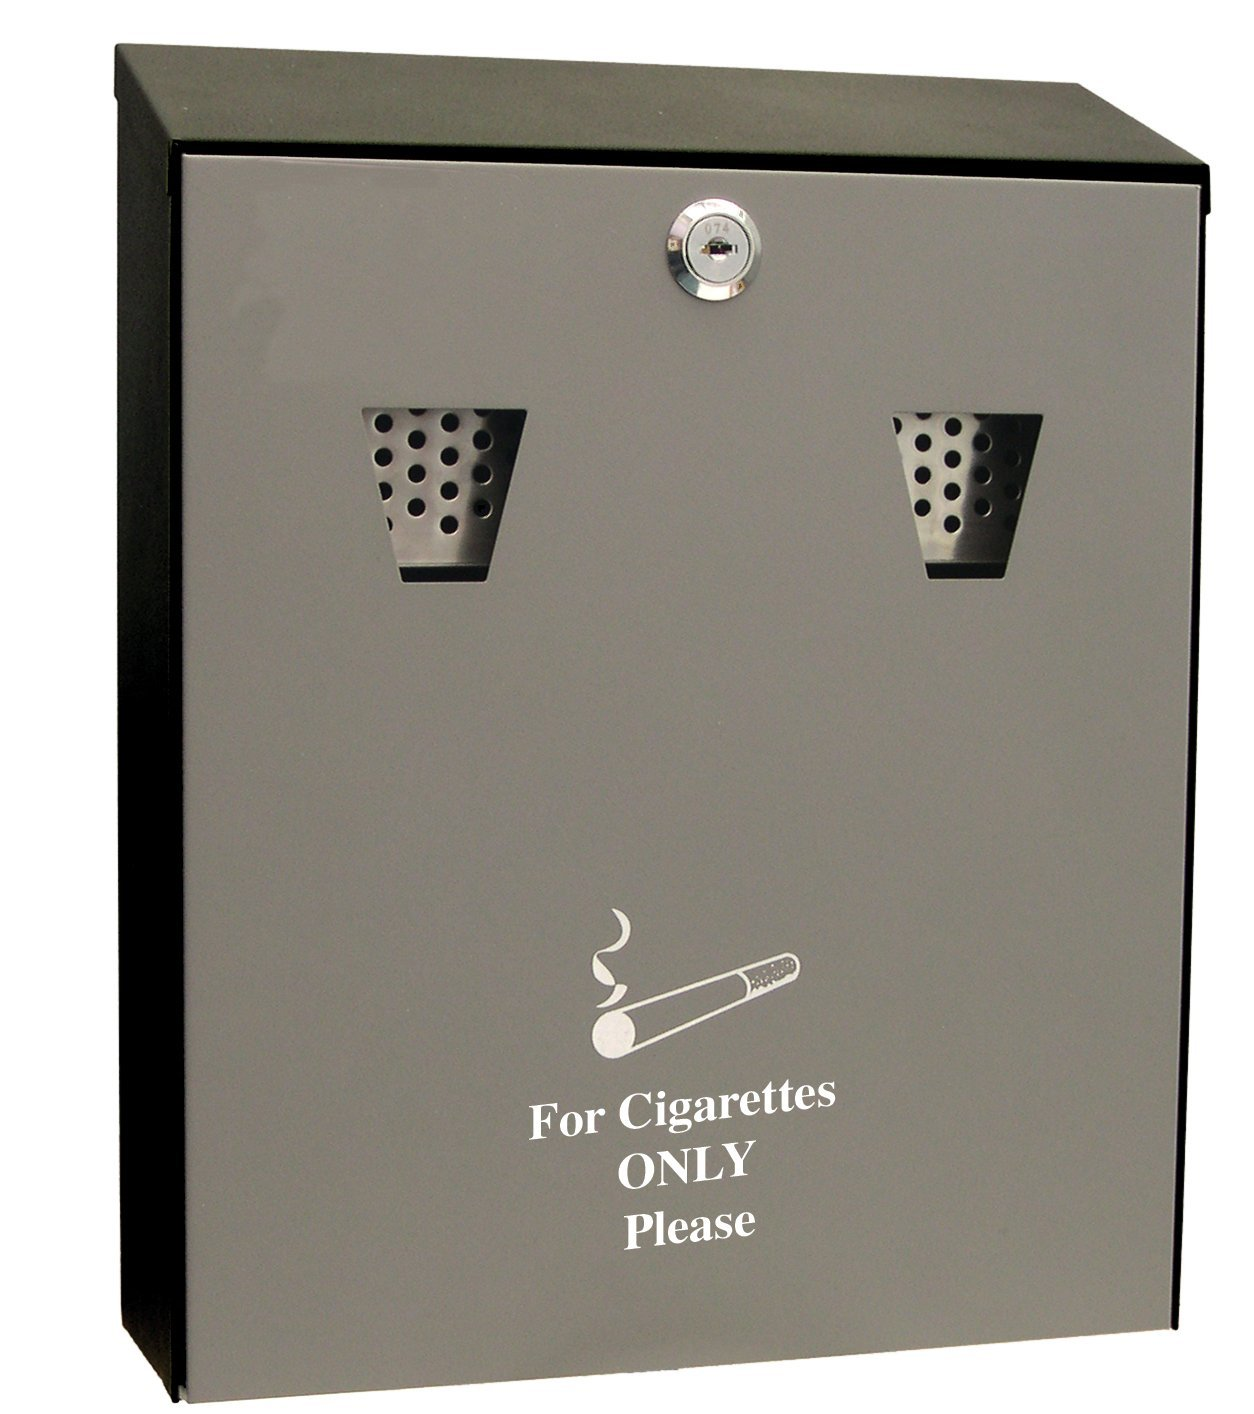 Cathedral Products Catehedral Ash Bin